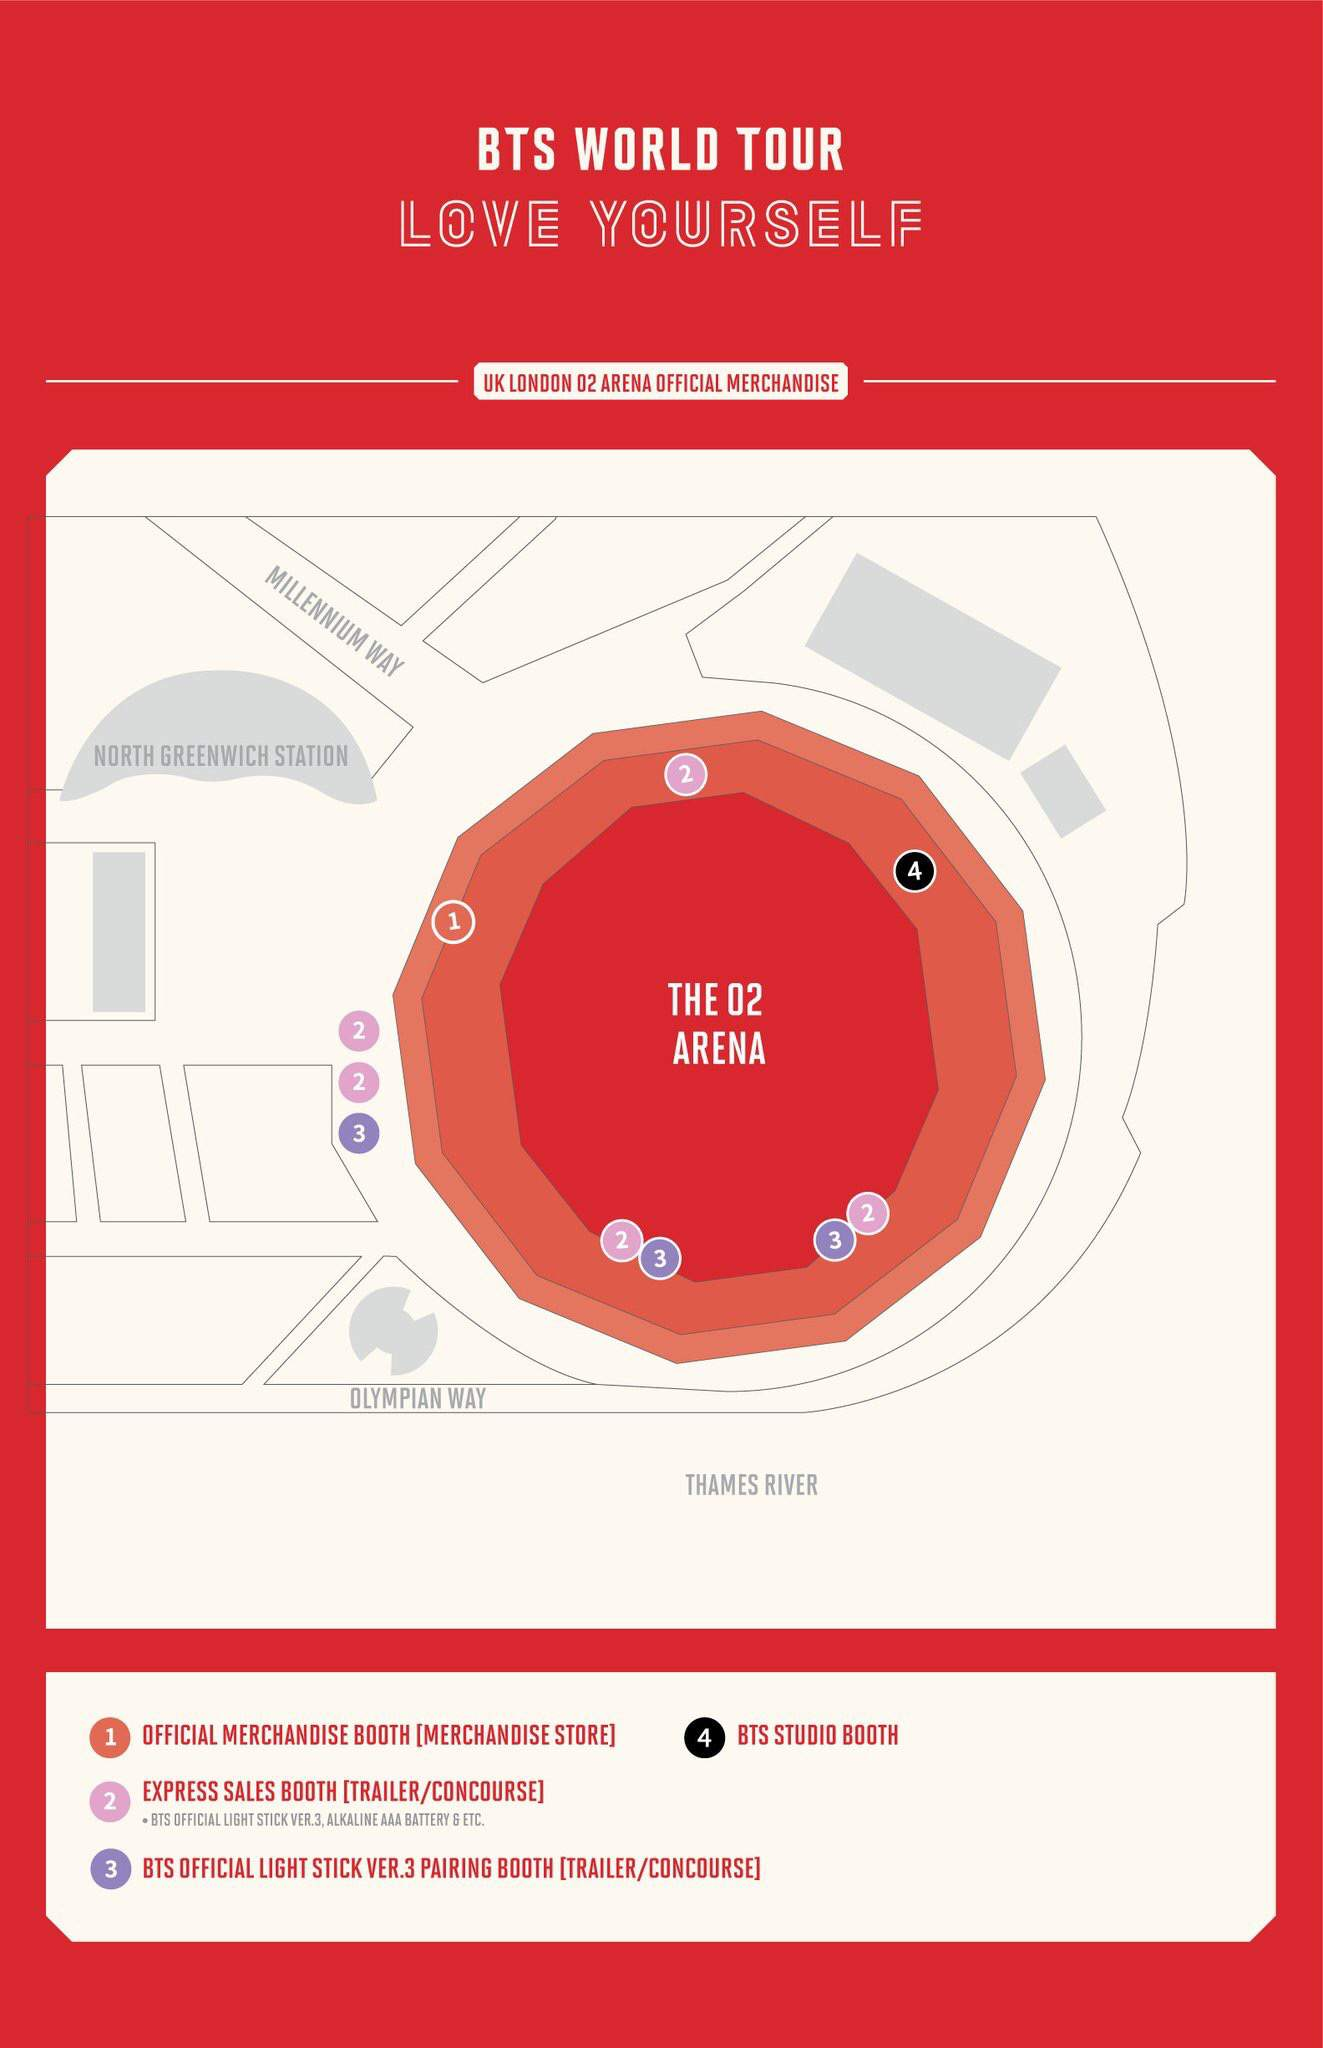 BTS 'Love Yourself' O2 ARENA INFORMATION + PRICES | ARMY's Amino